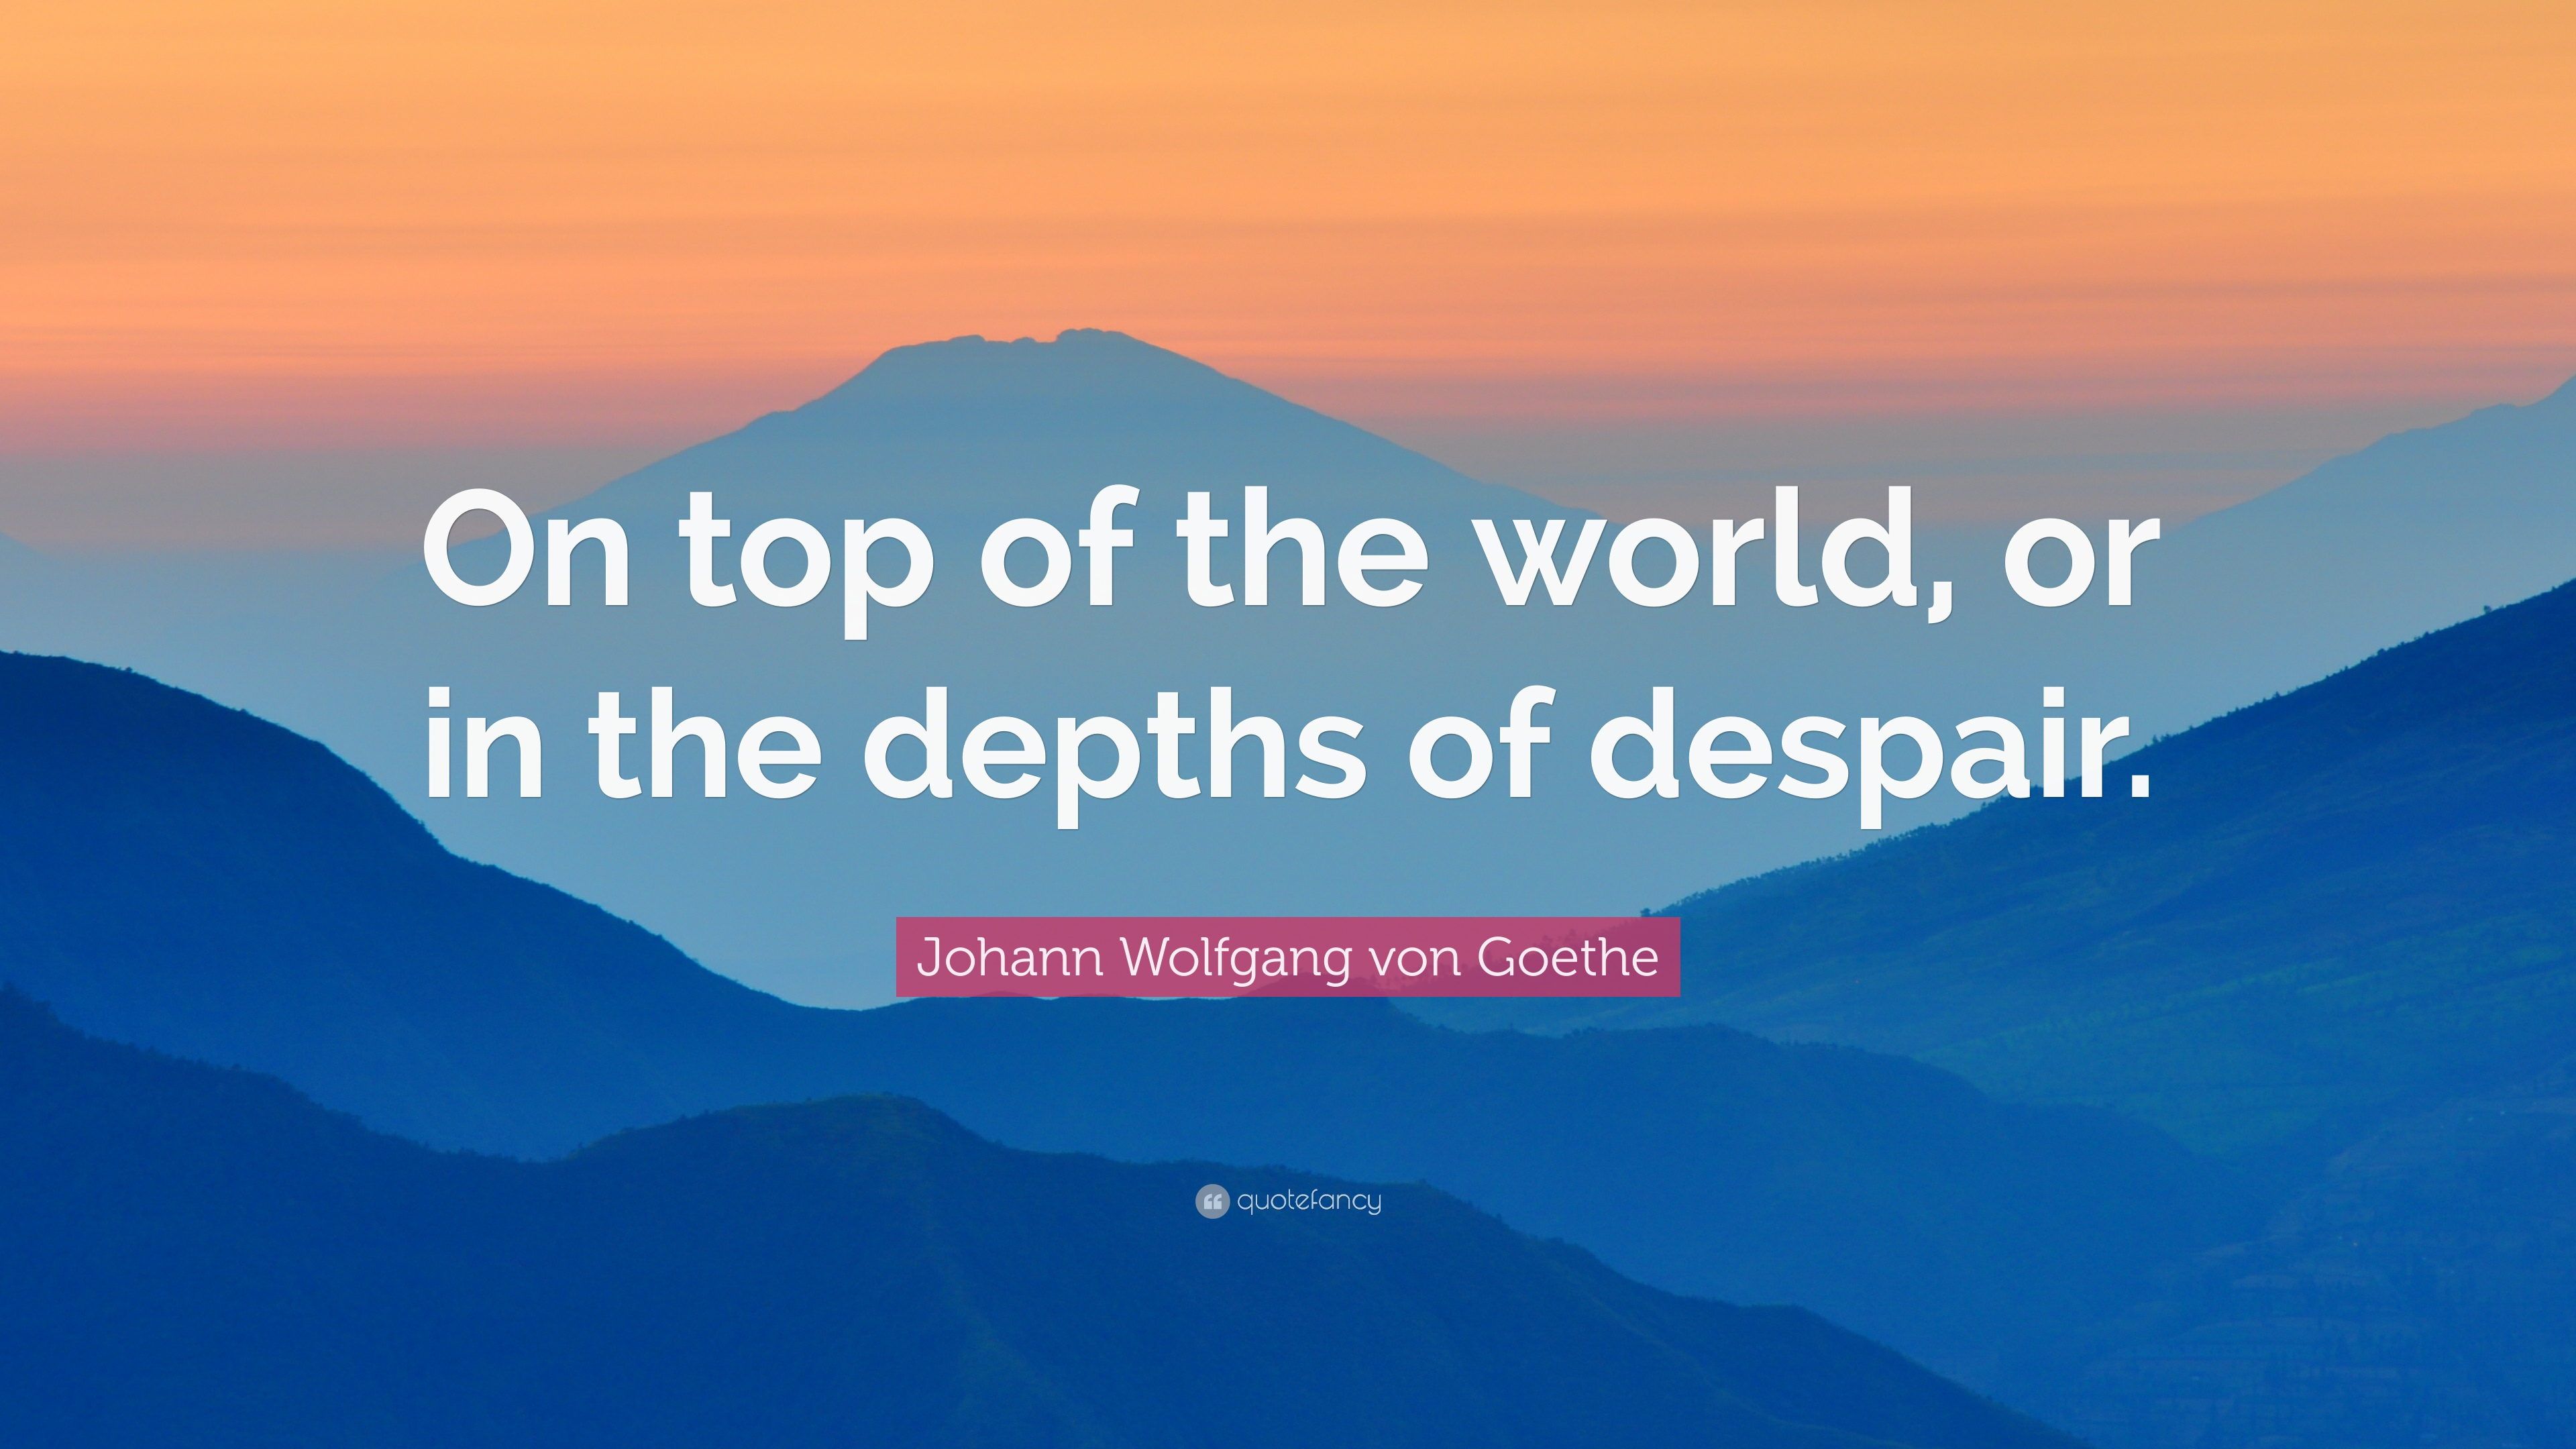 Johann Wolfgang Von Goethe Quote On Top Of The World Or In The